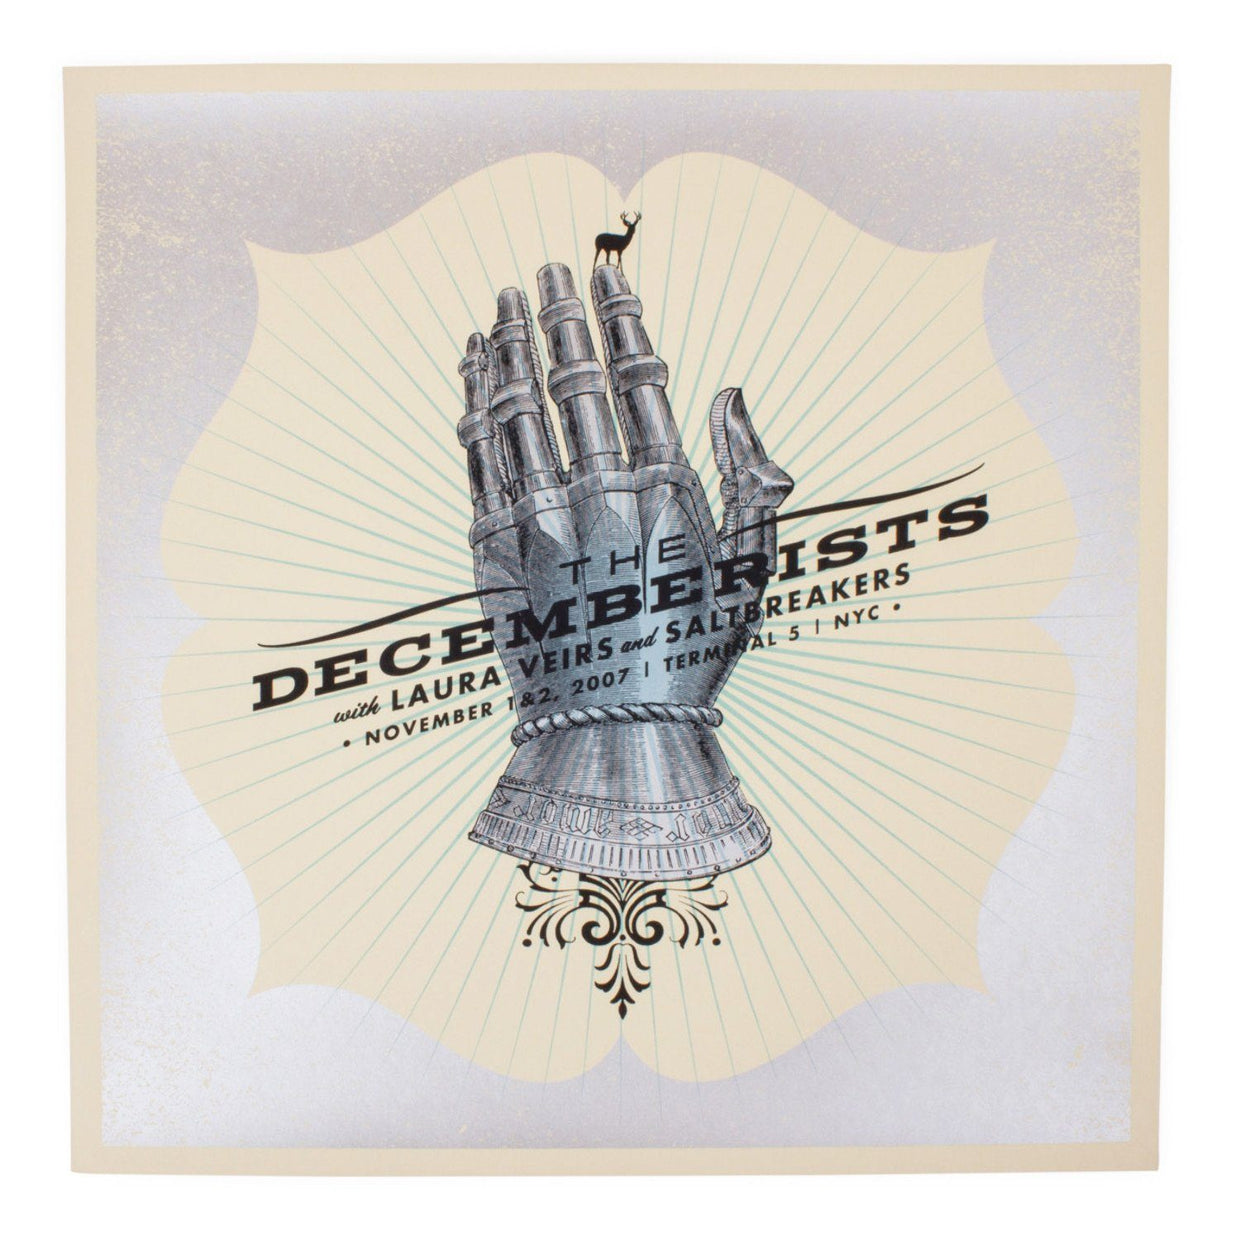 The Decemberists NYC 2007 Limited Edition Show Poster - 19